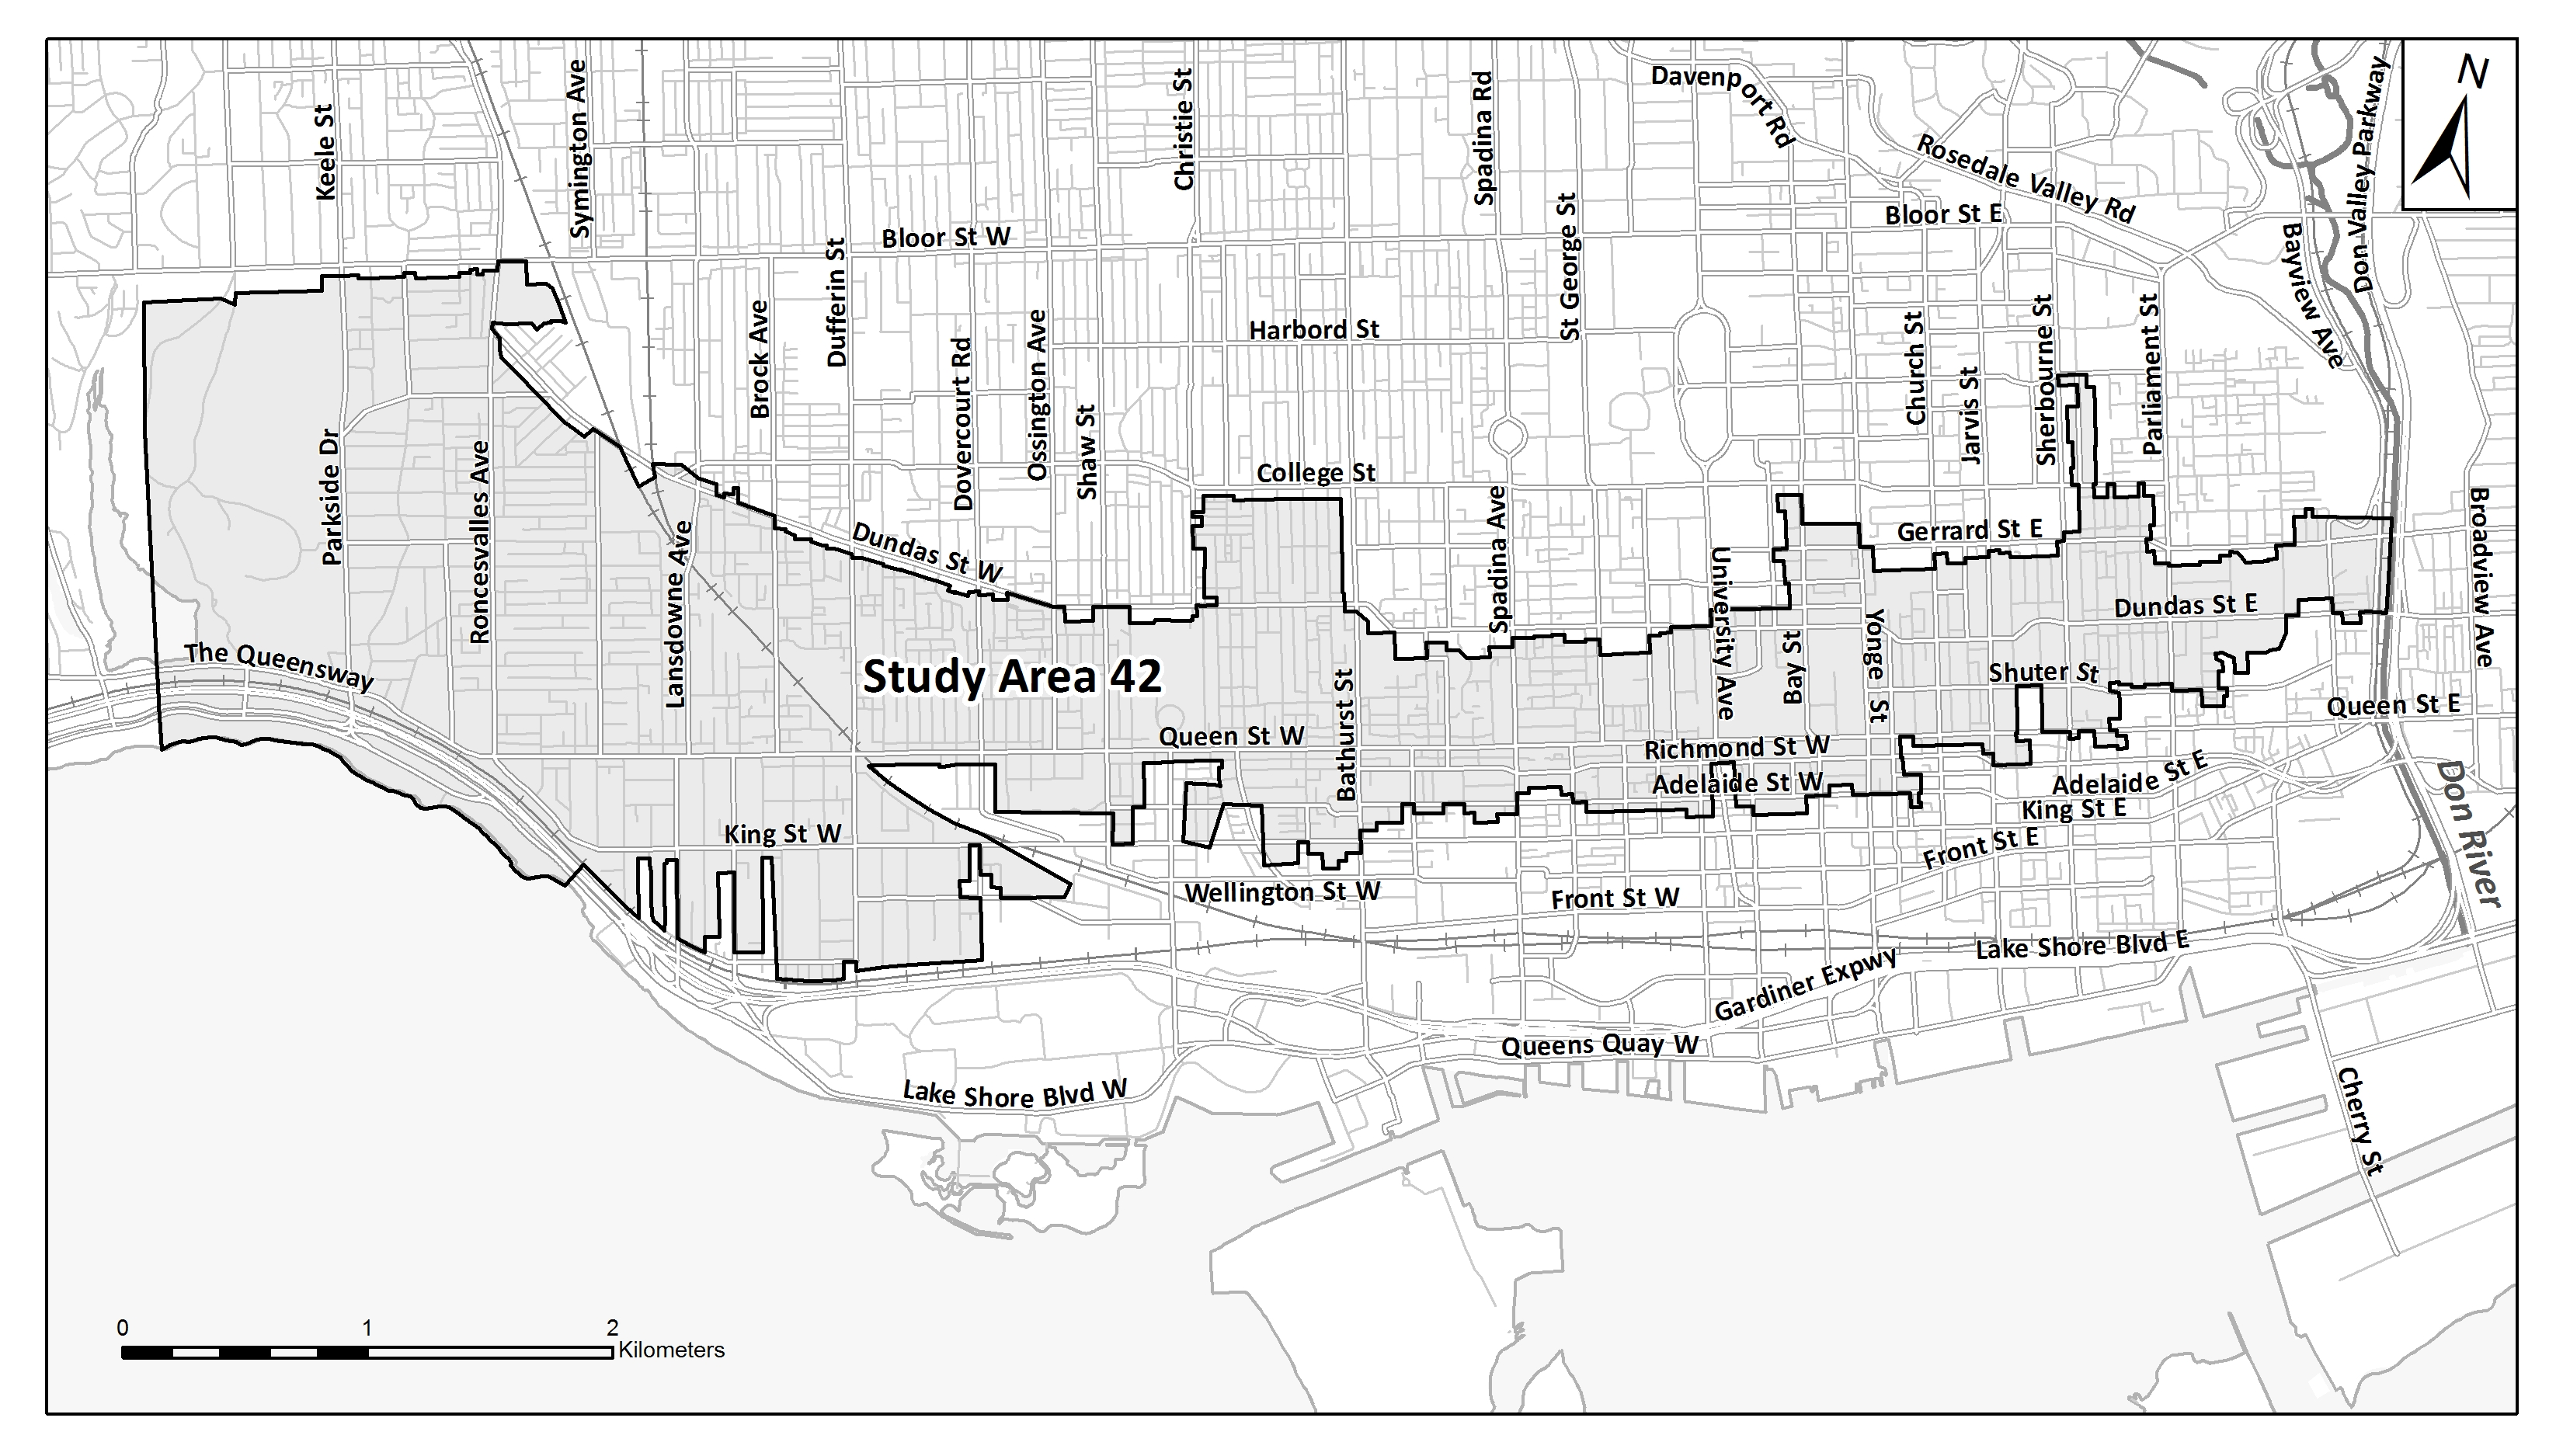 Map of Basement Flooding Study Area 42. If you need help reading this map, contact the Public Consultation Unit at floodingstudy@toronto.ca or 416-392-8210.